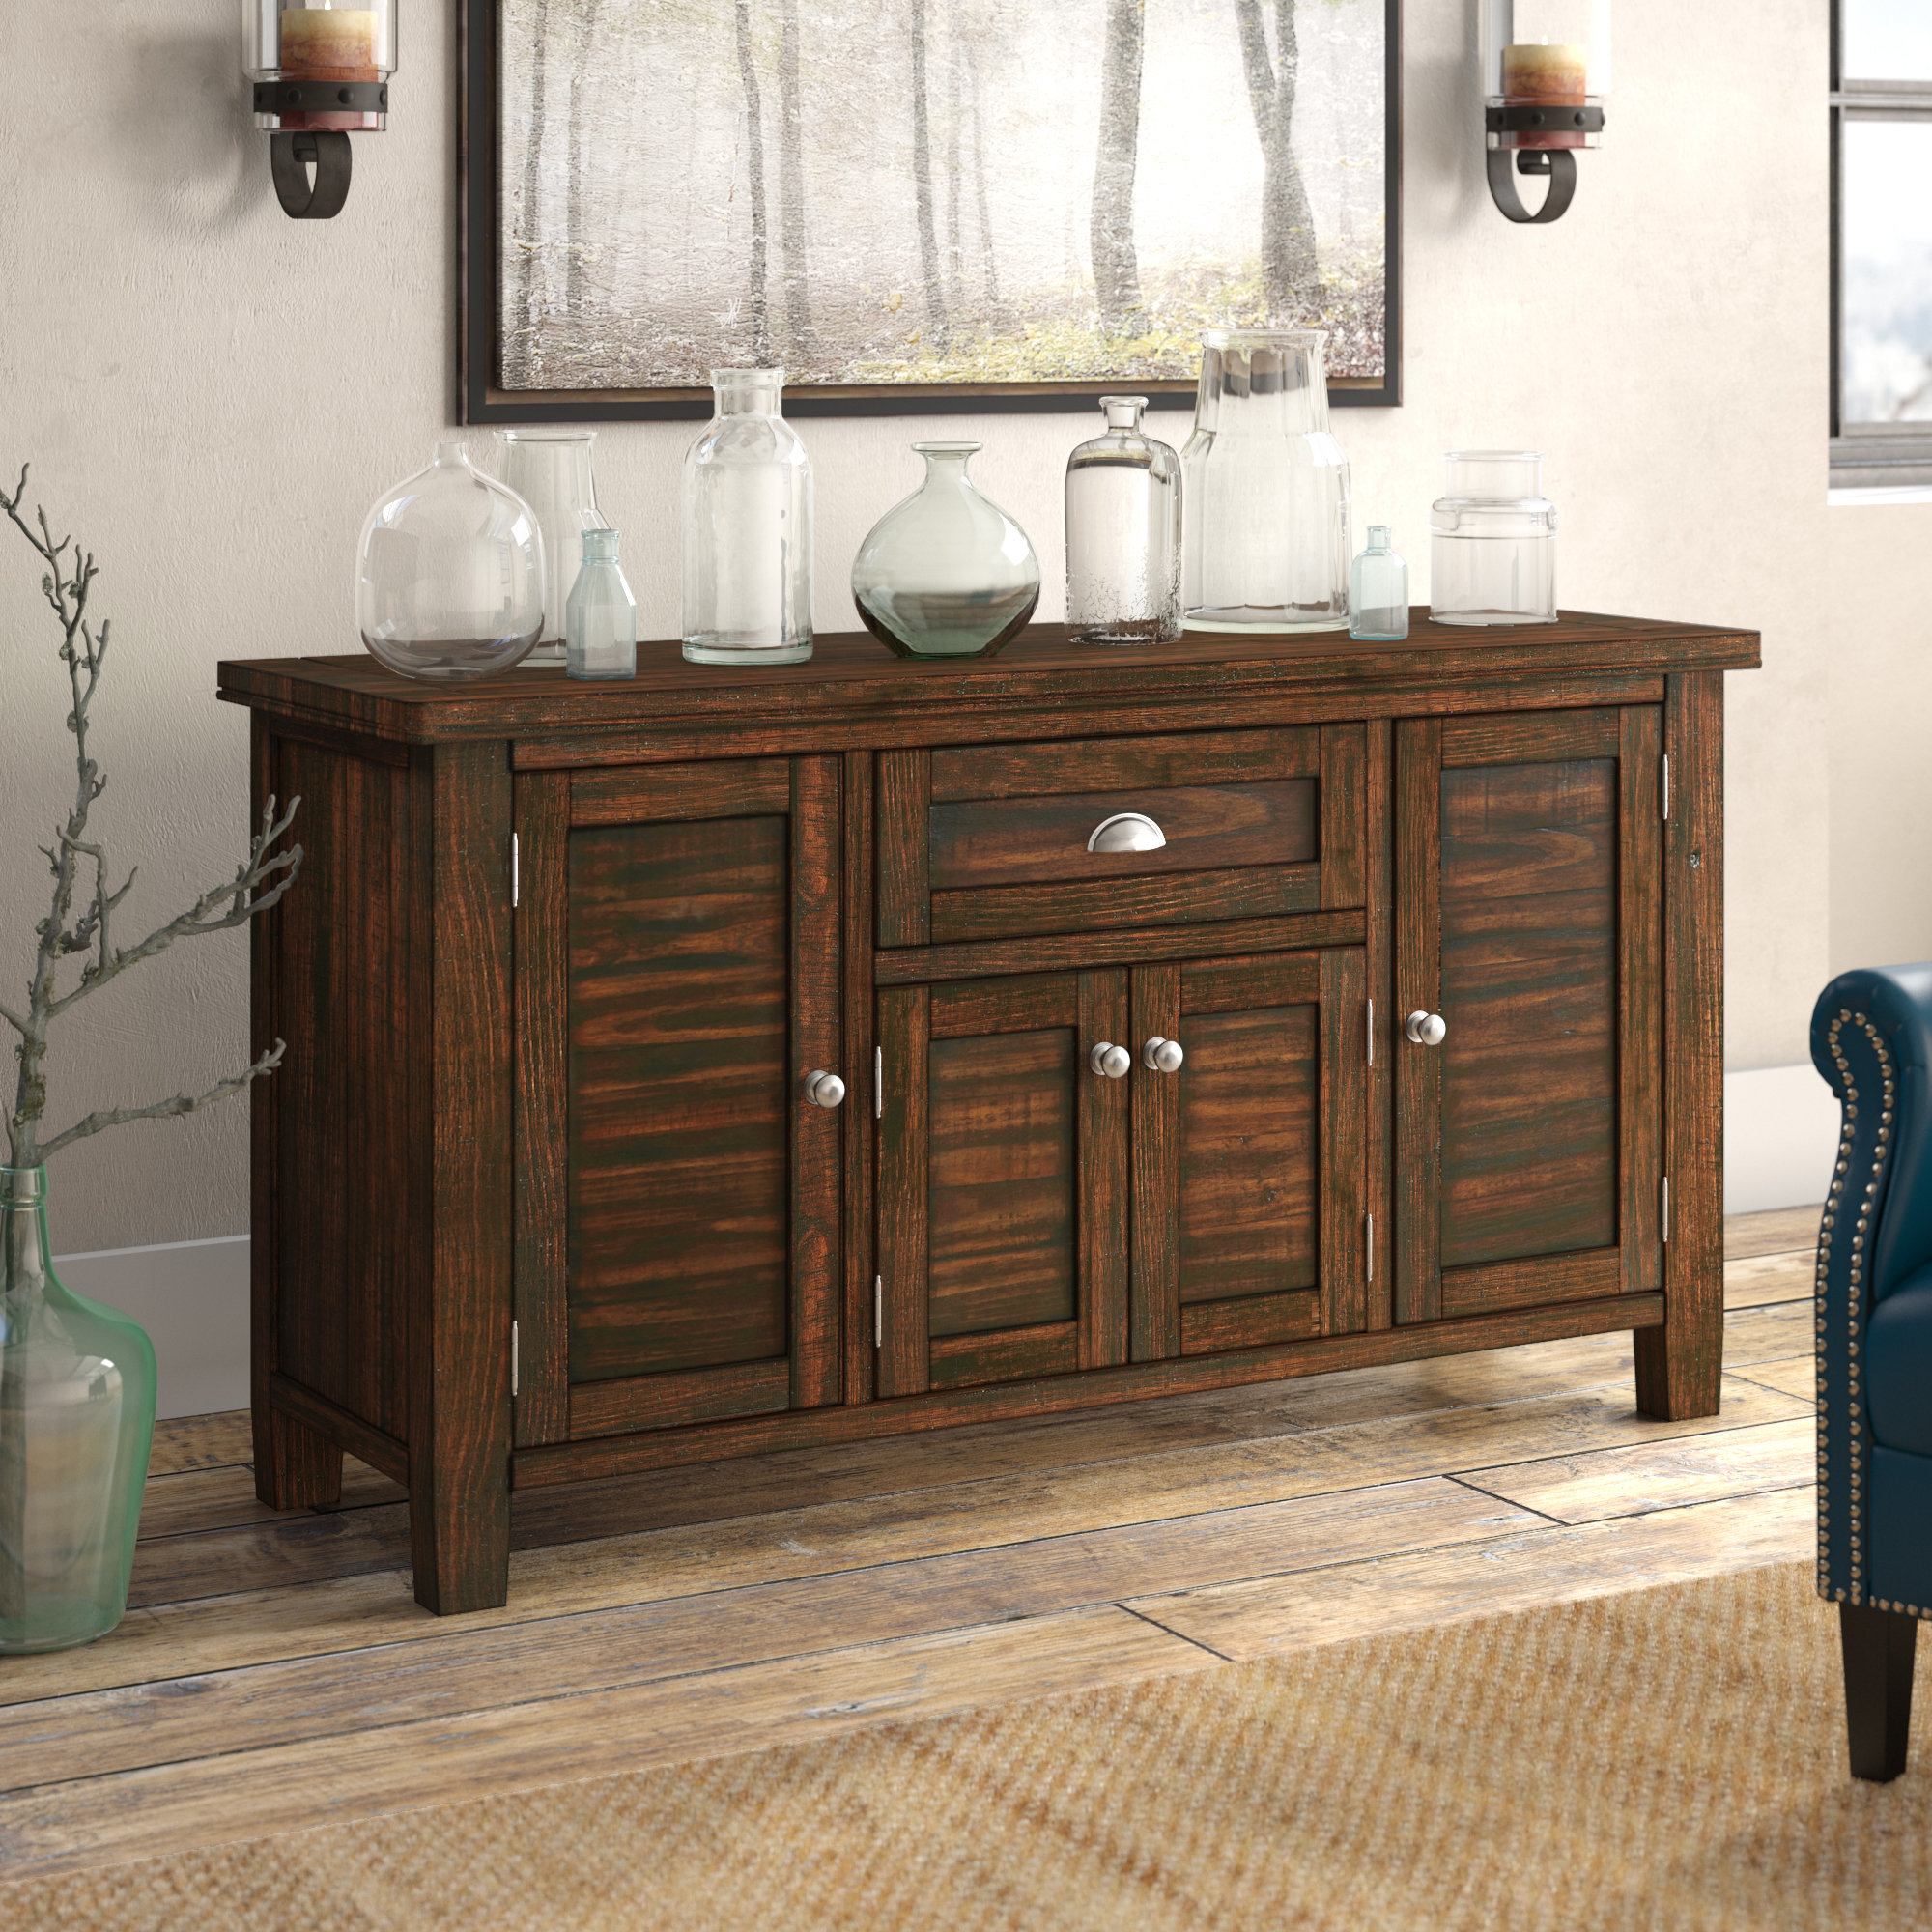 Chaffins Sideboard With Nashoba Sideboards (View 2 of 20)